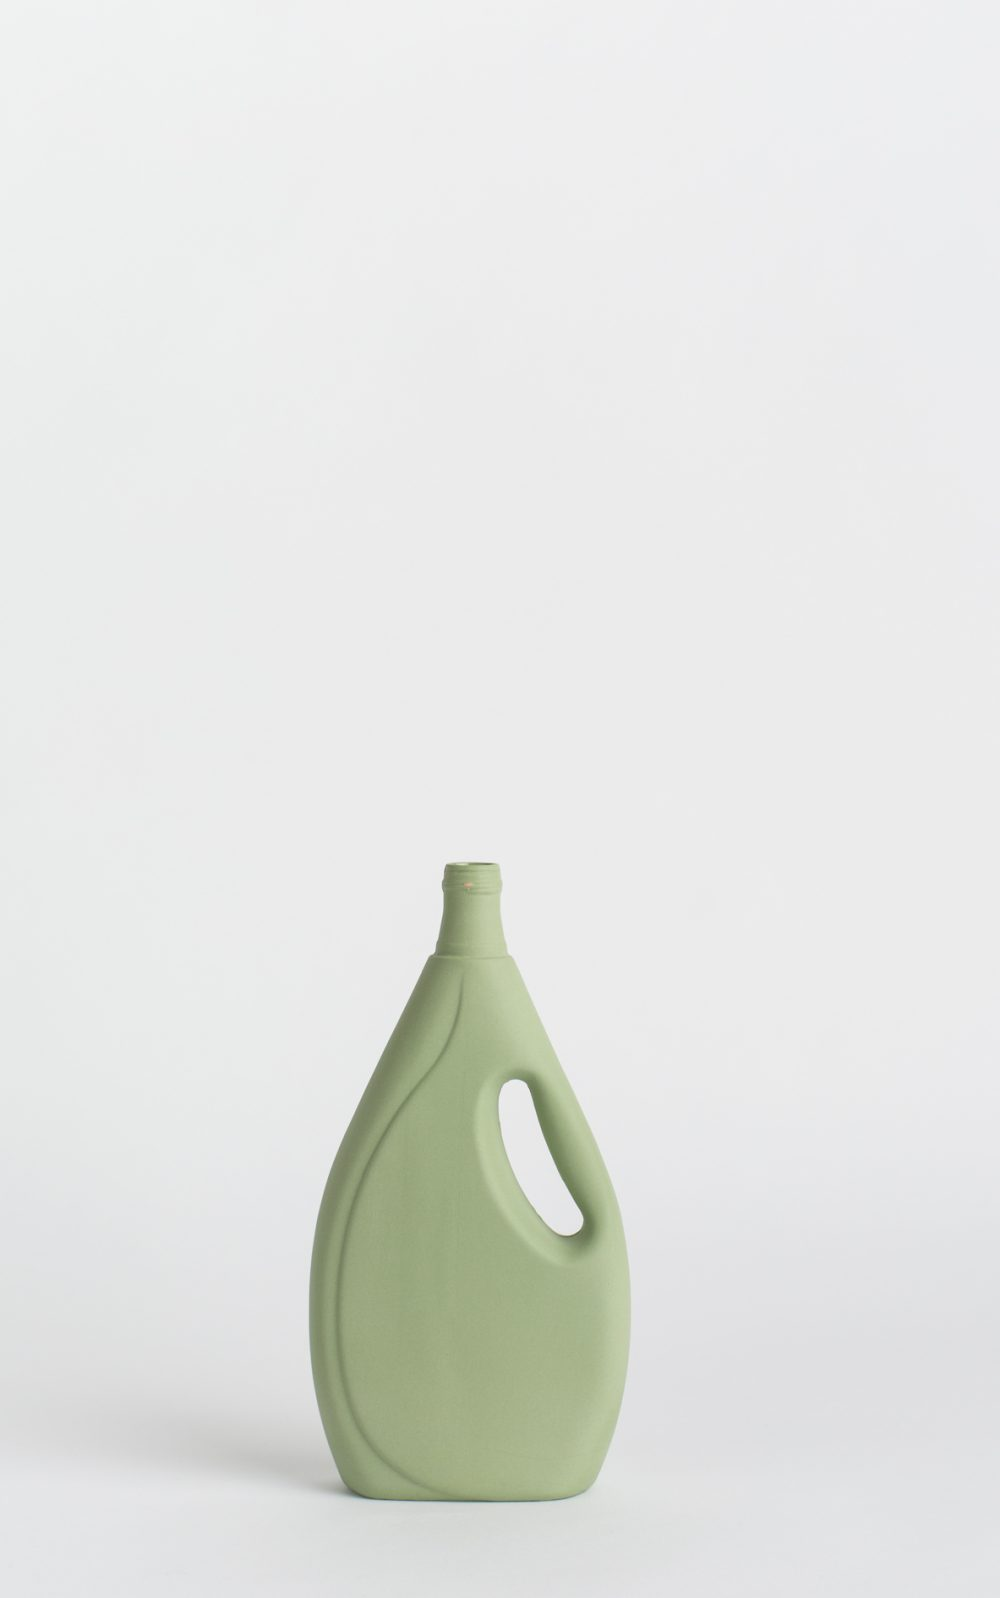 bottle vase #7 dark green